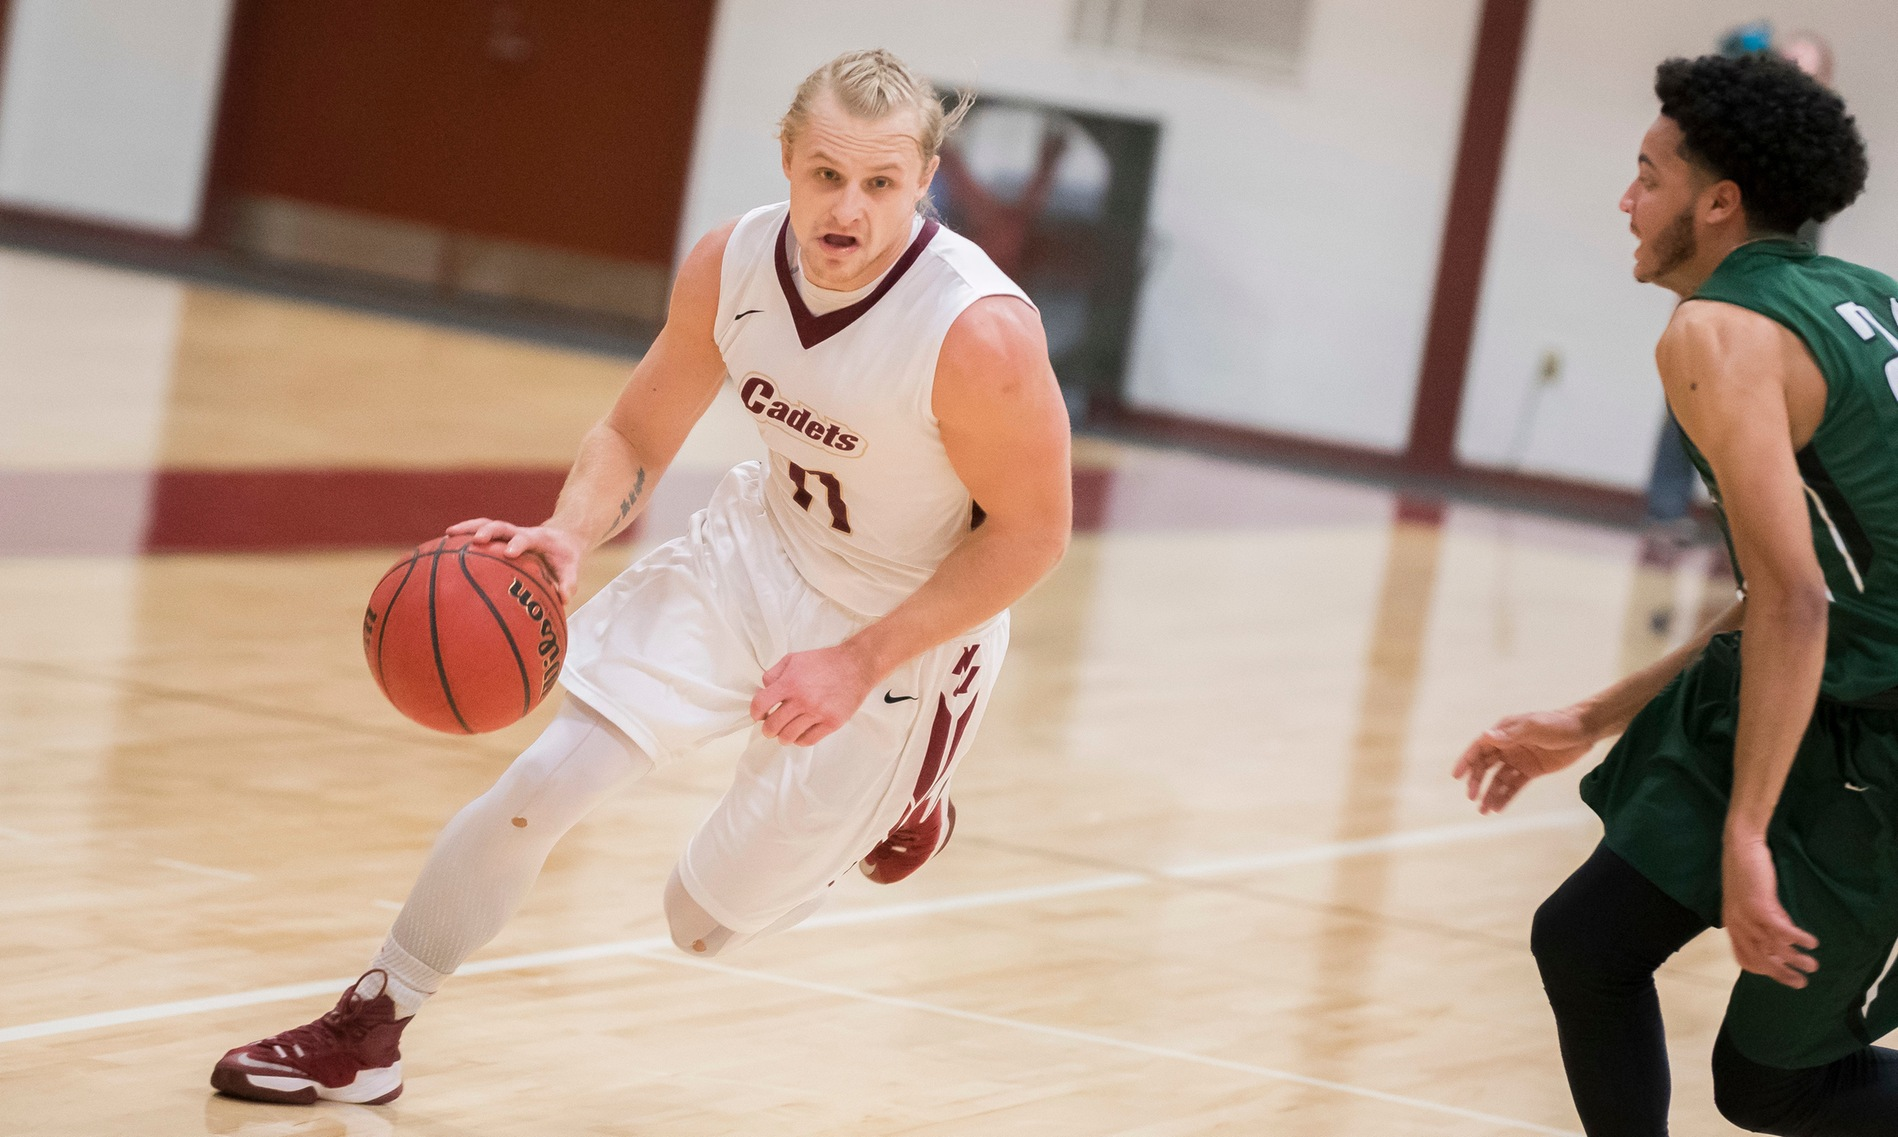 Men's Basketball: Cadets Fall to Lesley, 66-55